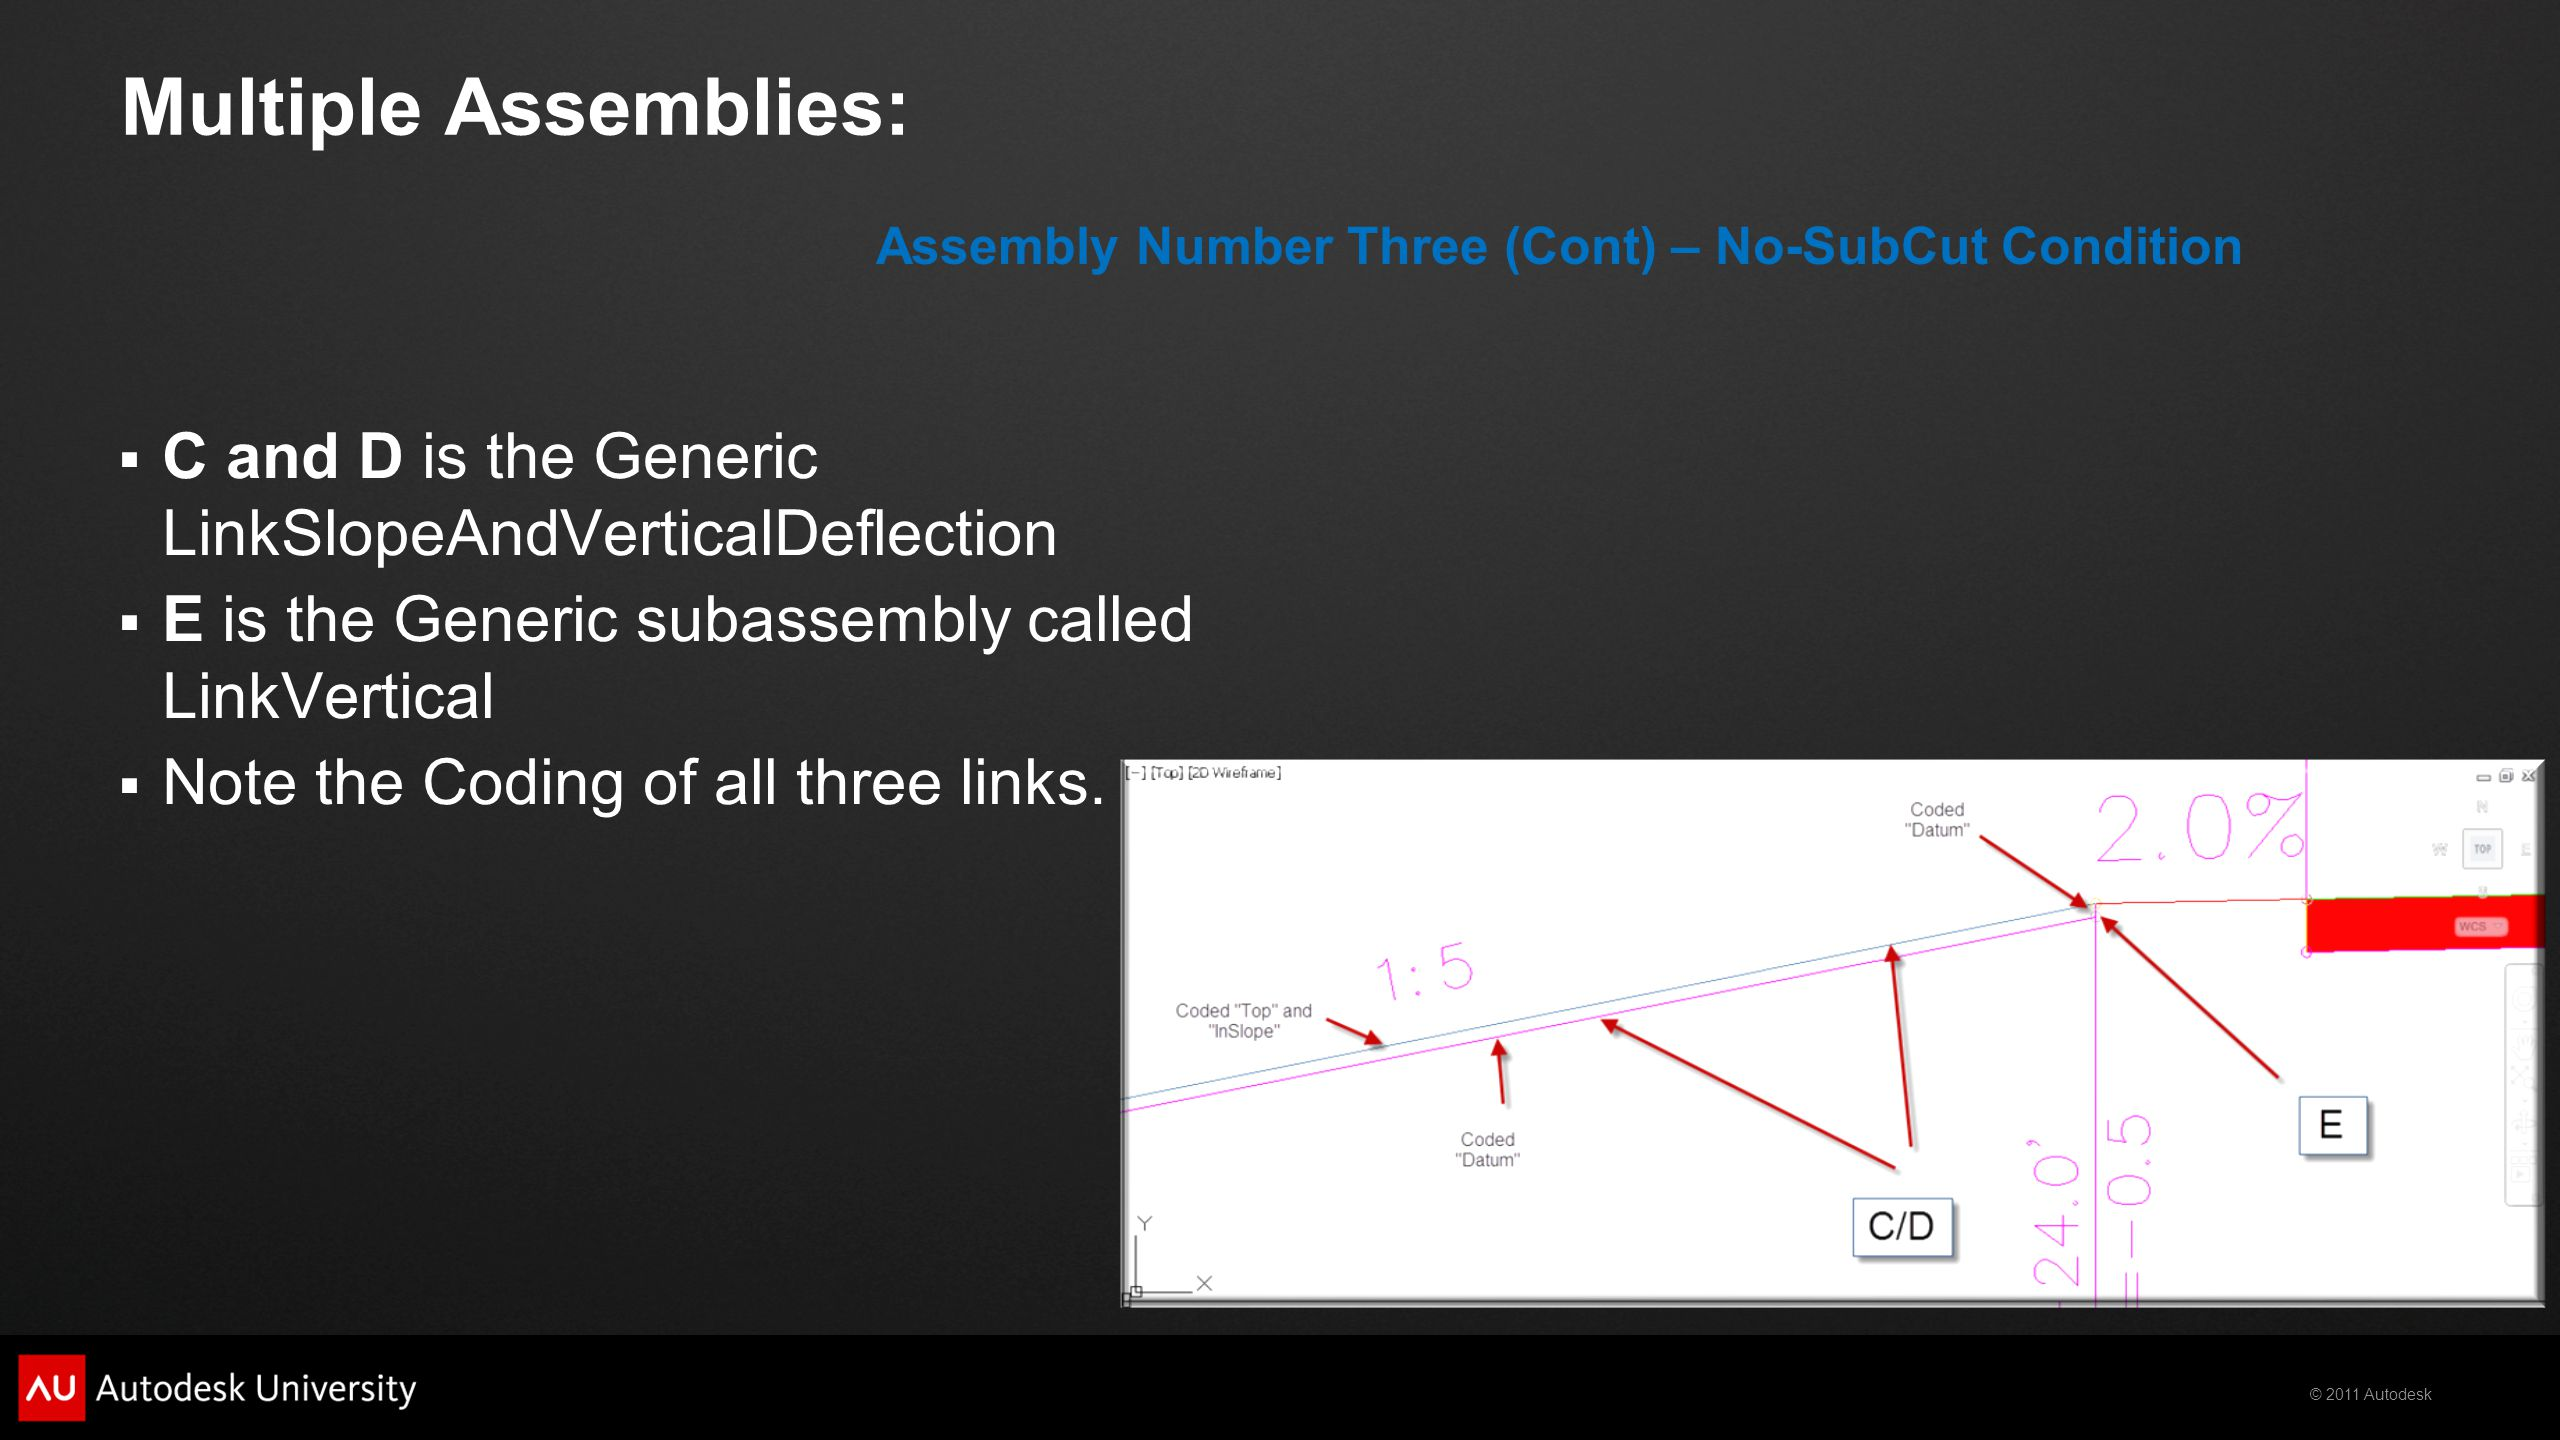 Assembly Number Three (Cont) – No-SubCut Condition